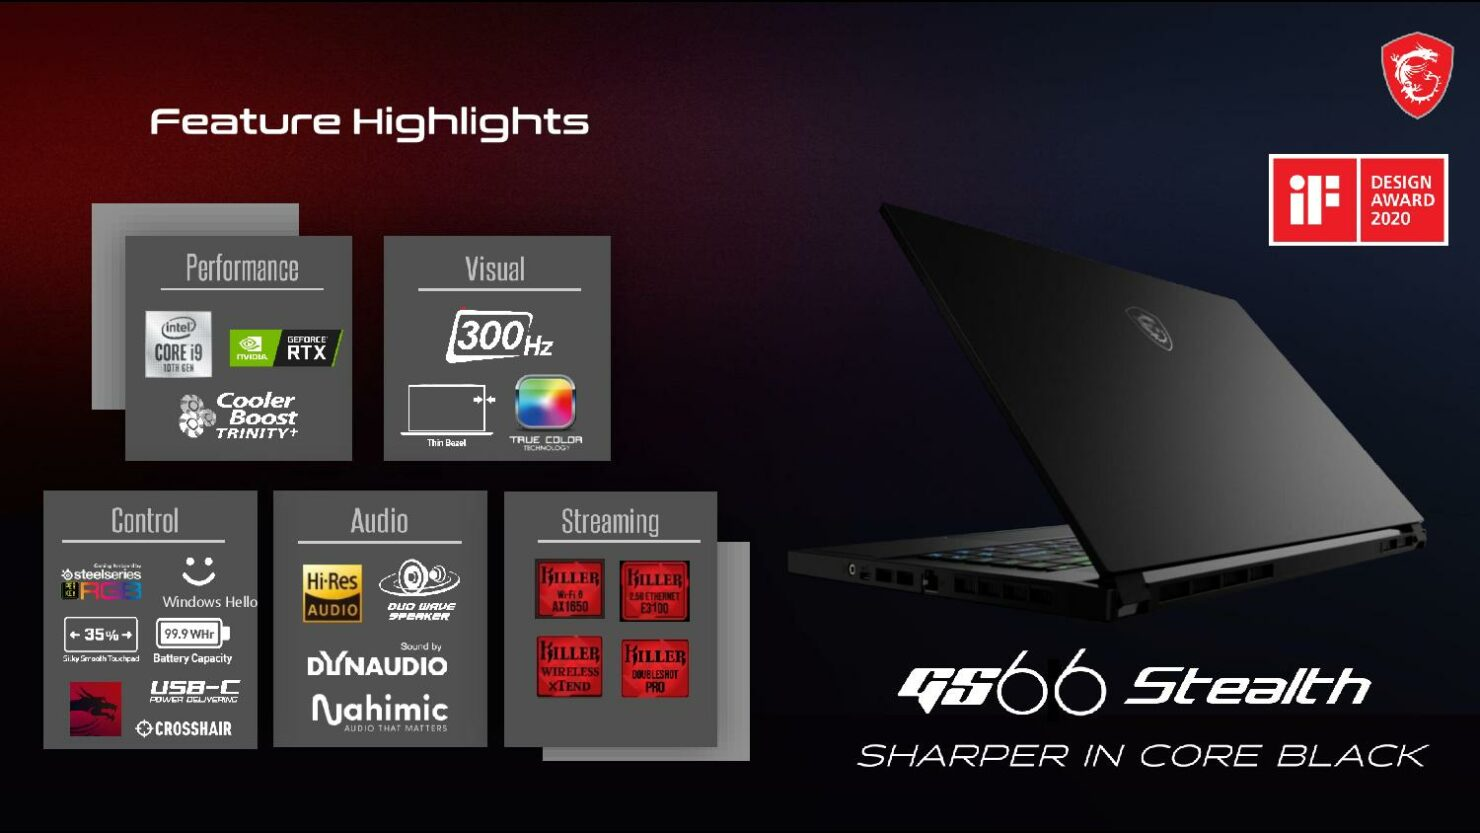 msi-gs66-stealth-product-information-page-045